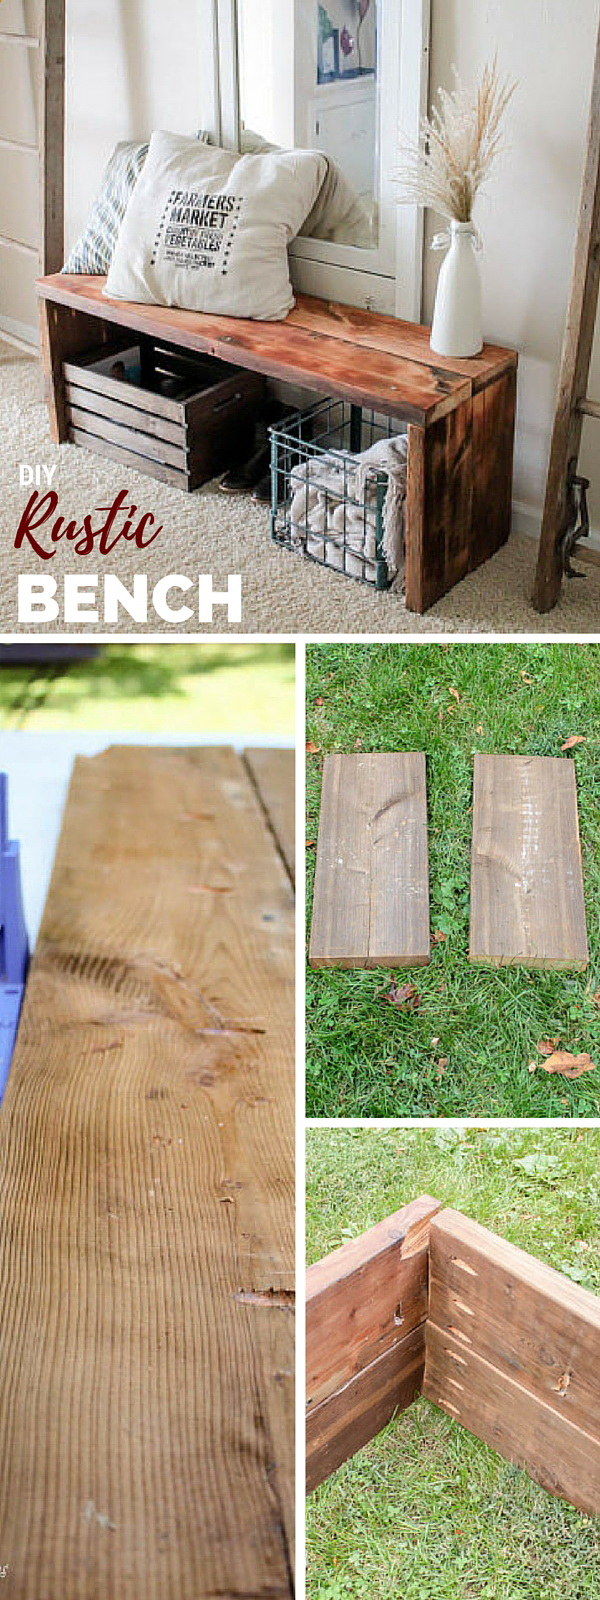 Outstanding Rustic Diy Projects To Add Warmth To Your Farmhouse Decor Alphanode Cool Chair Designs And Ideas Alphanodeonline